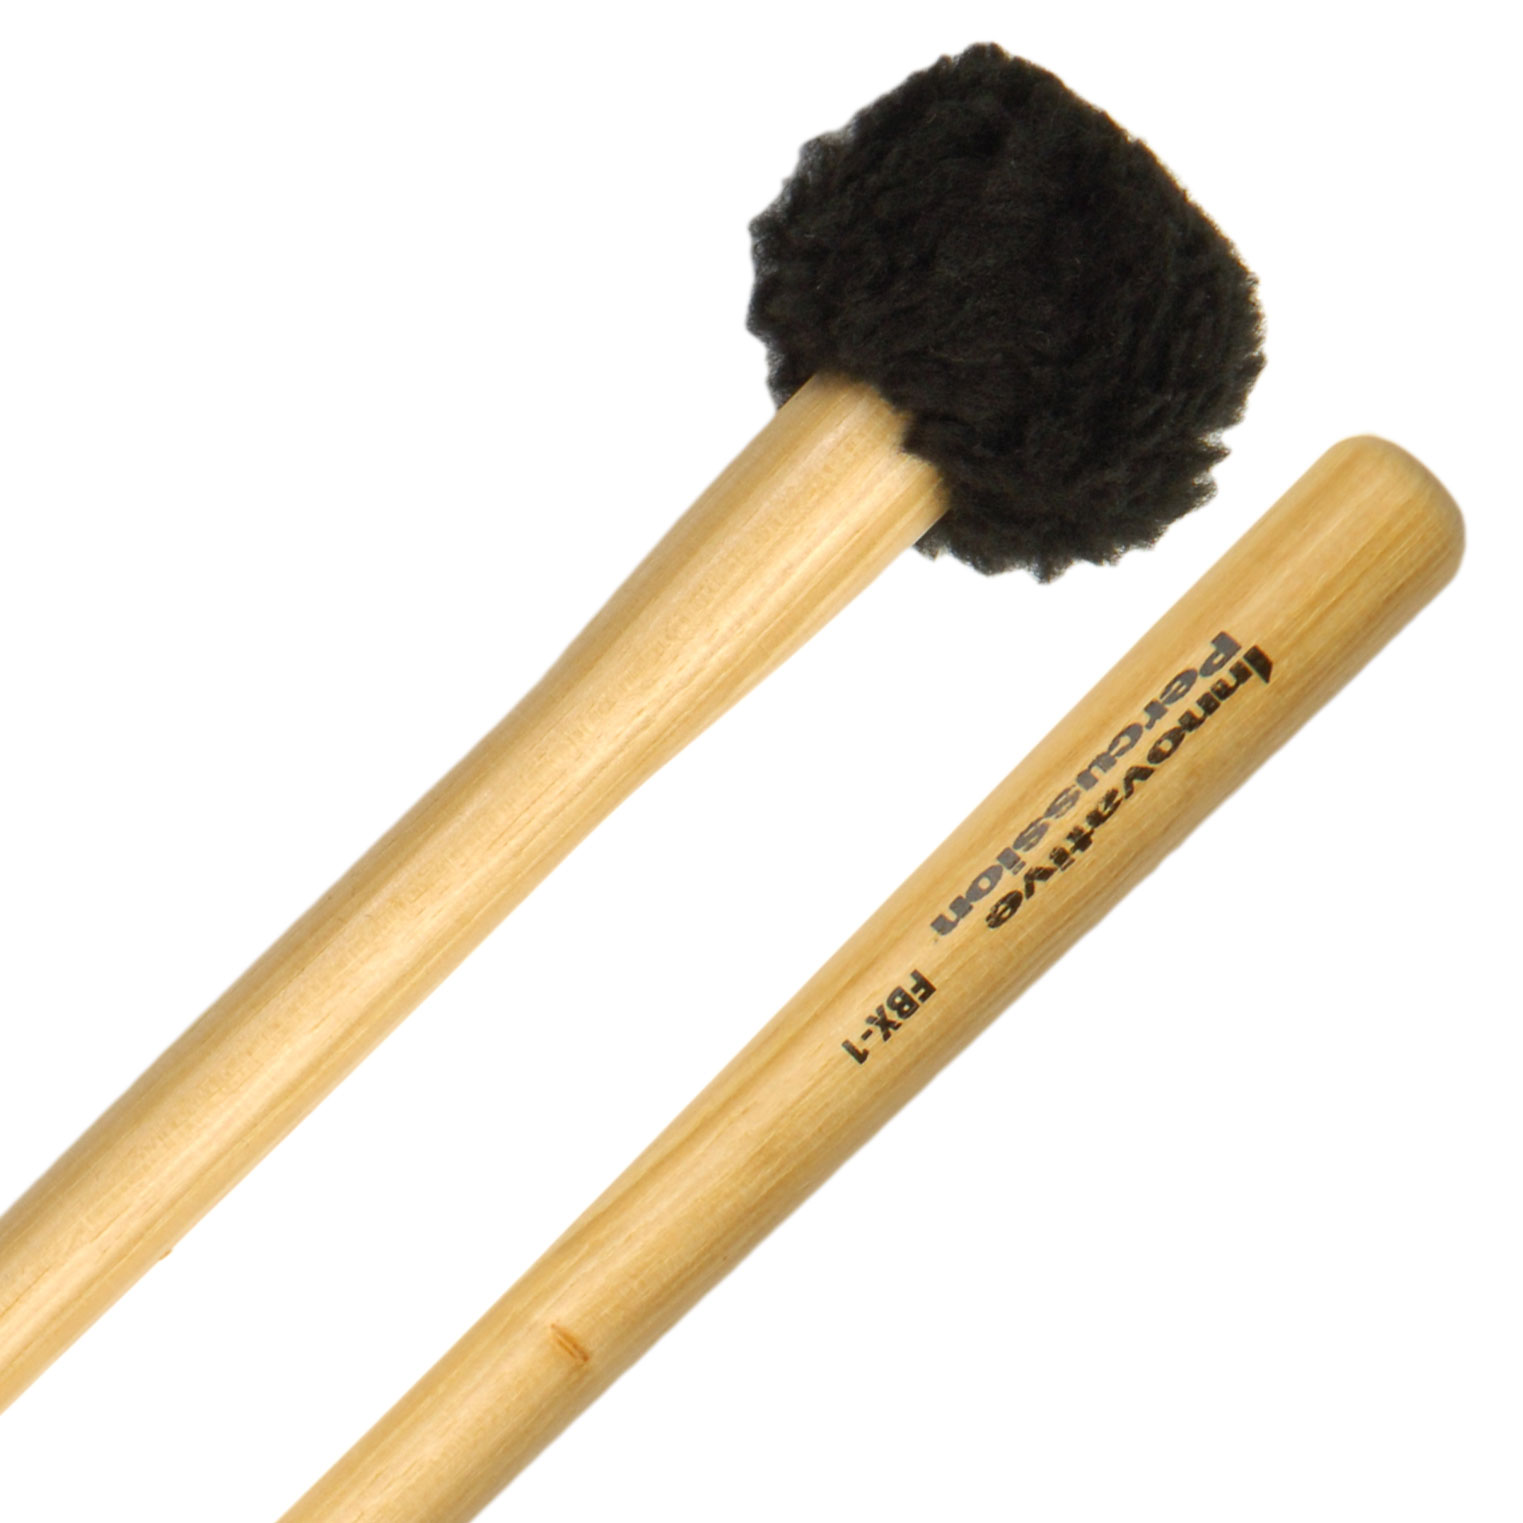 Innovative Percussion FBX-1S Field Series Tapered Handle Soft Marching Bass Drum Mallets